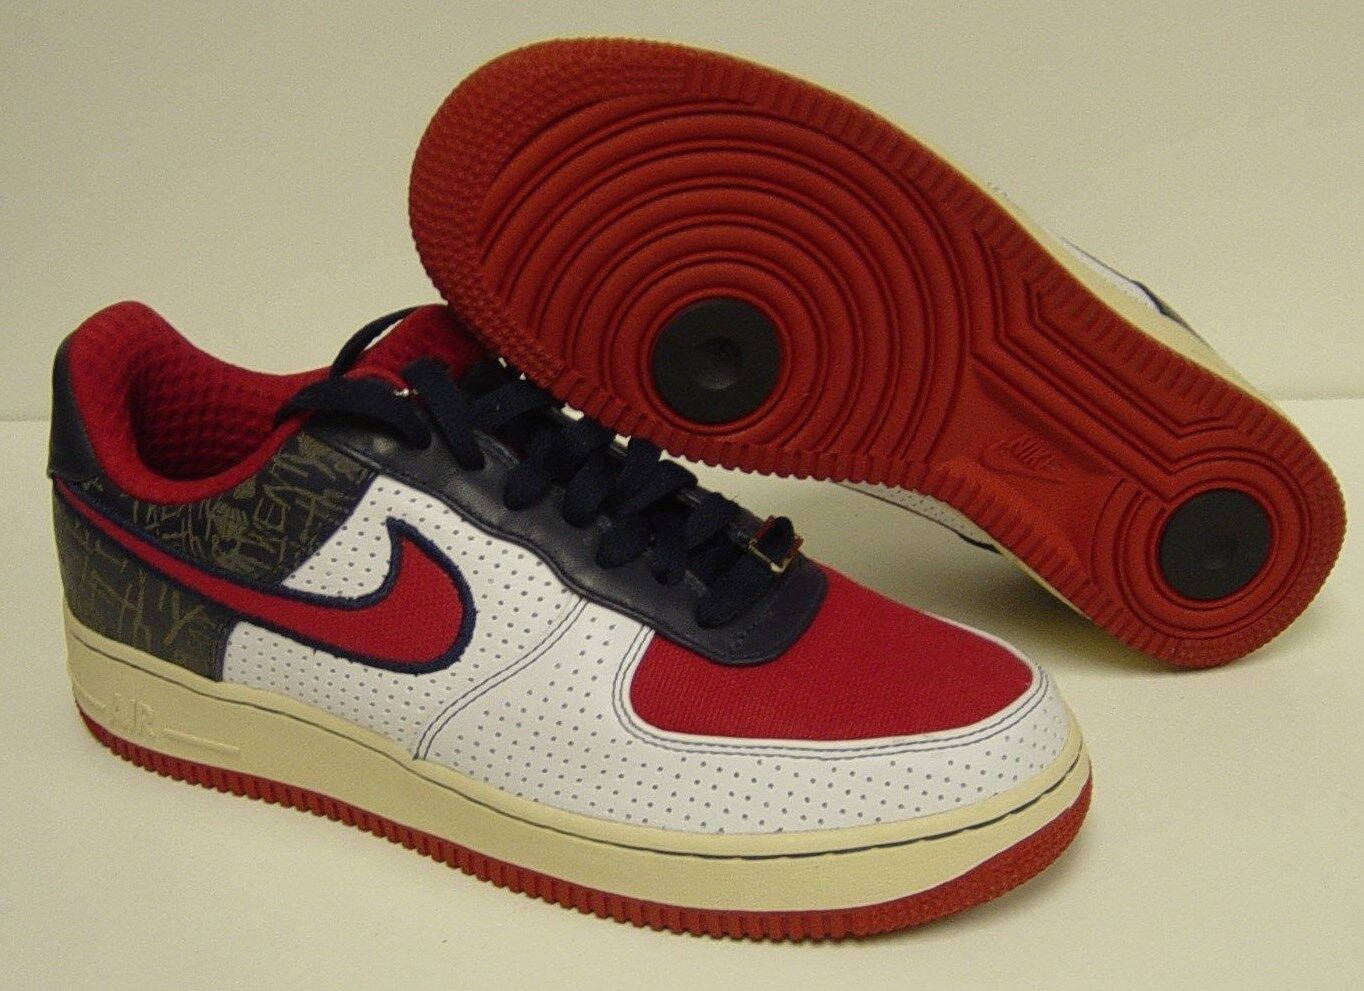 NEW Mens NIKE Air Force 1 Premium '07 315180 161 Red White Blue Sneakers Shoes Brand discount